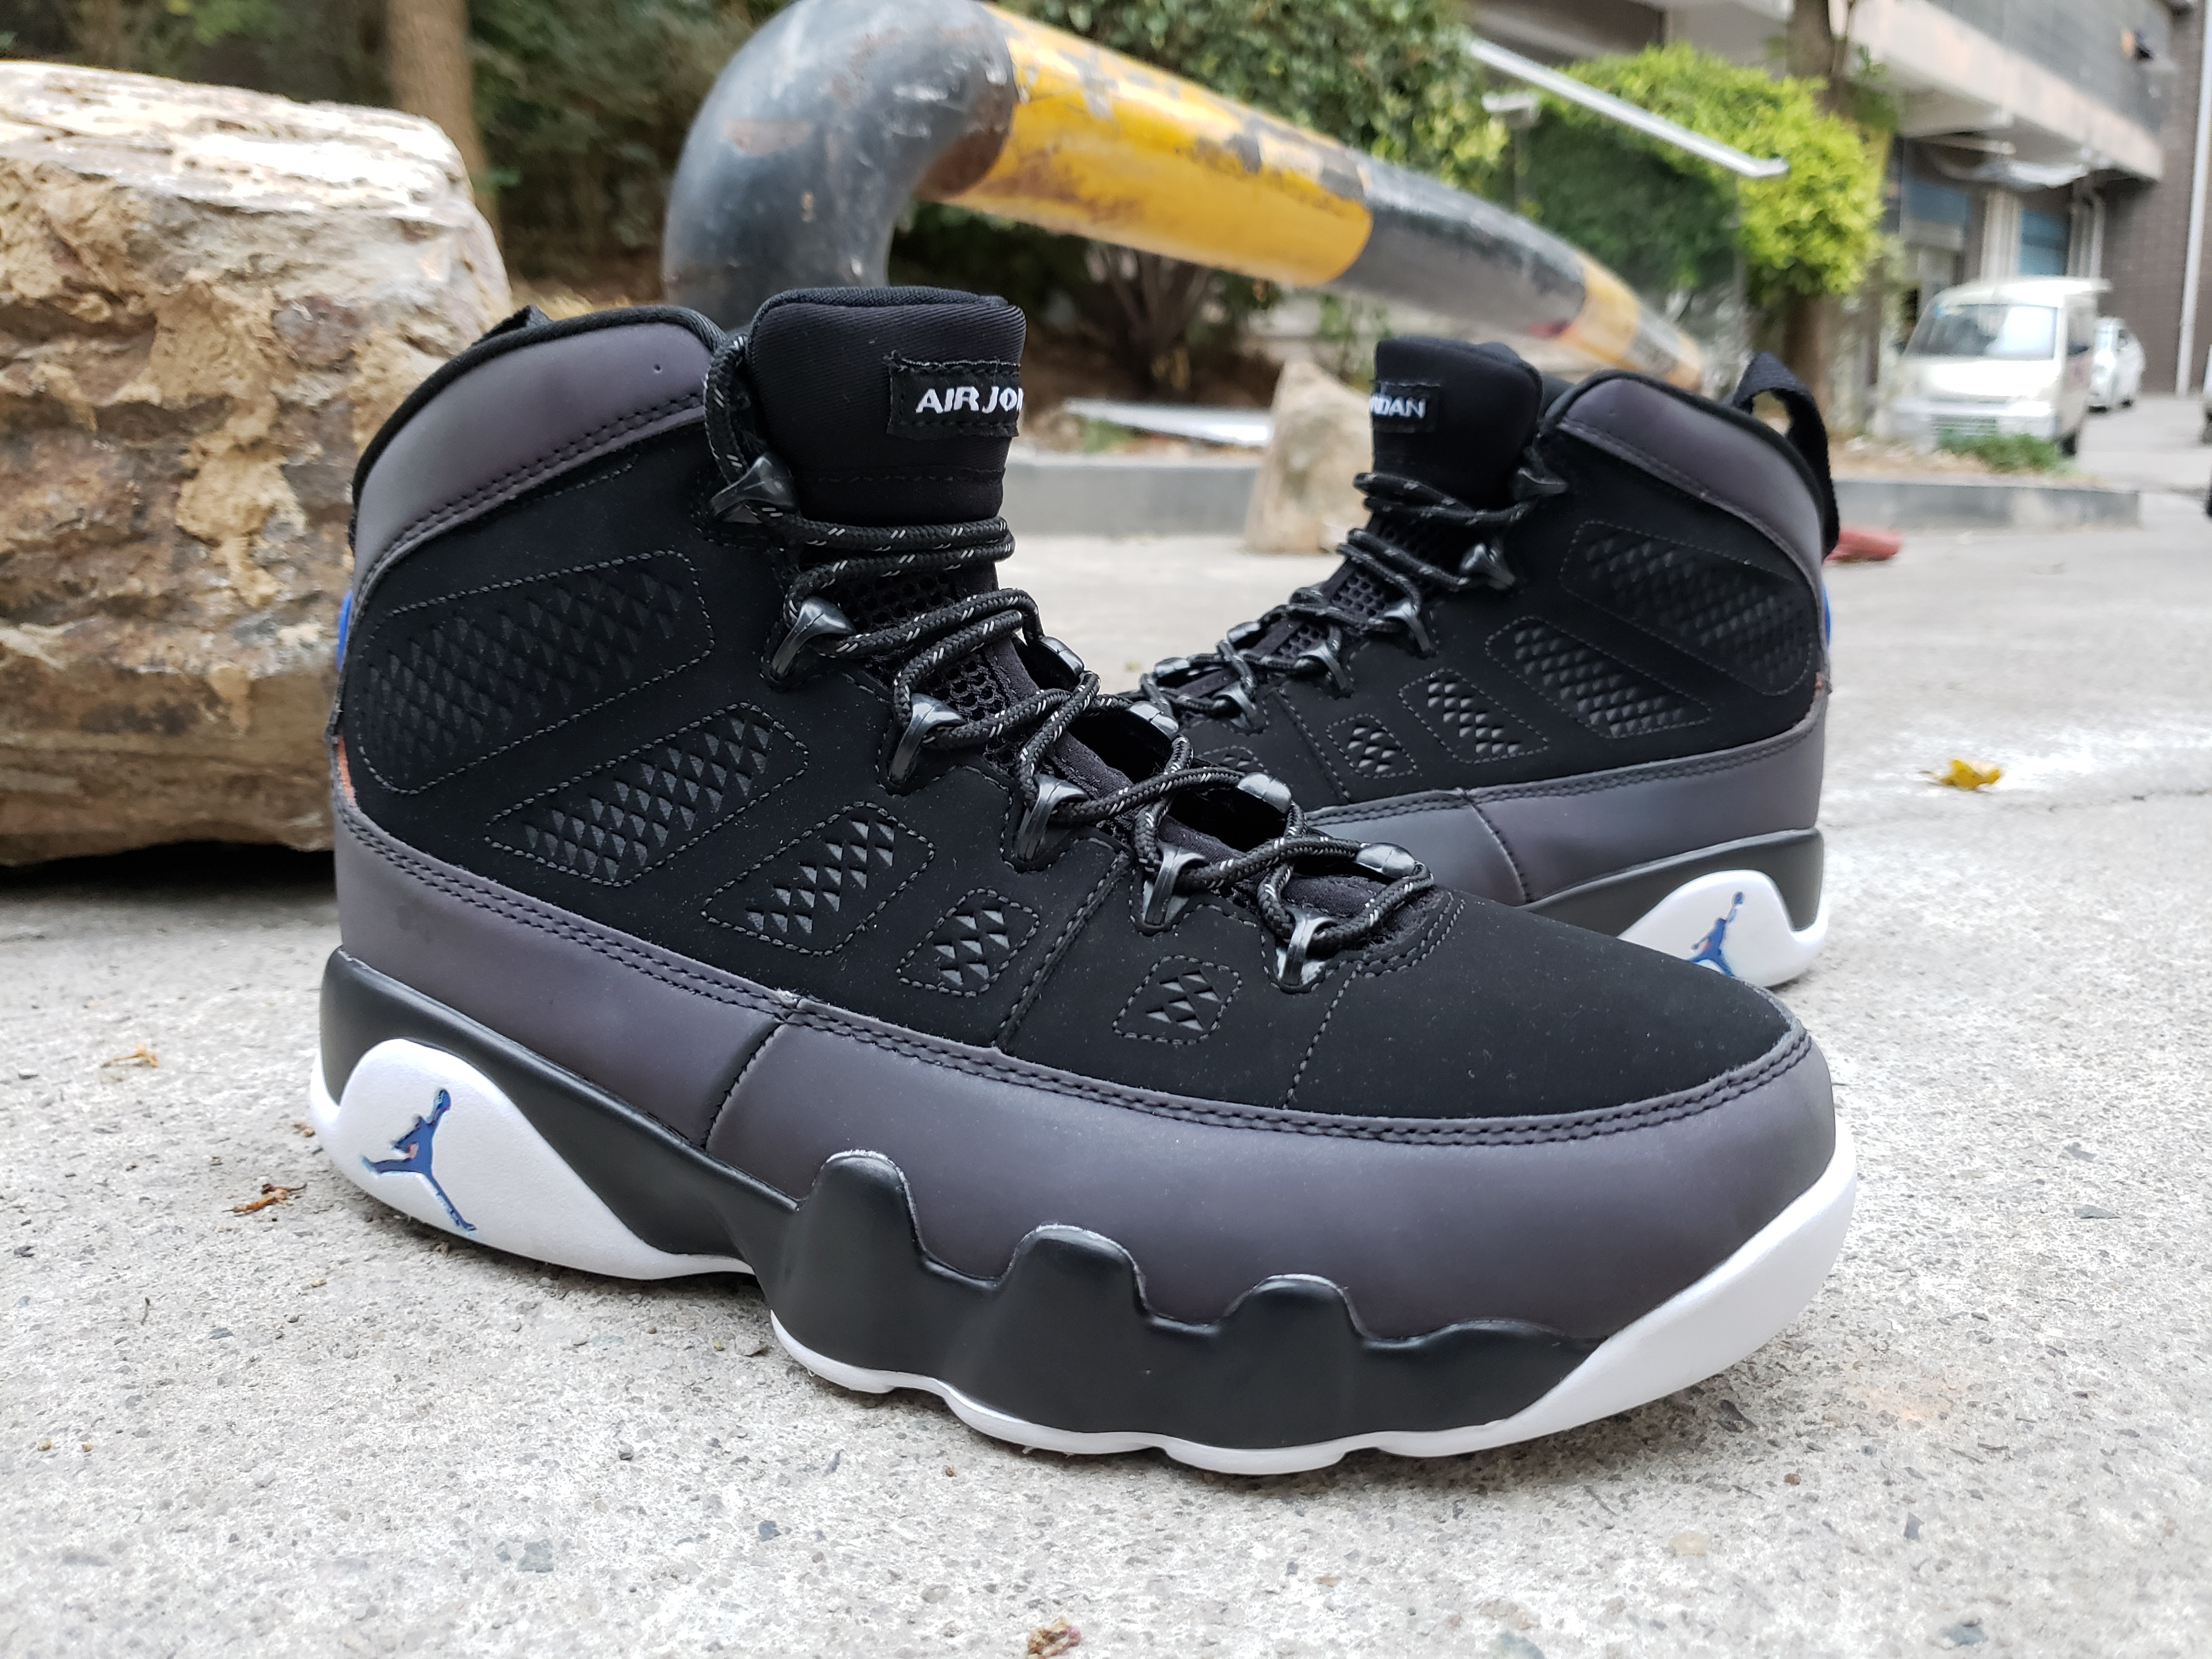 New Air Jordan 9 Retro Chamelon Black Grey Blue Shoes